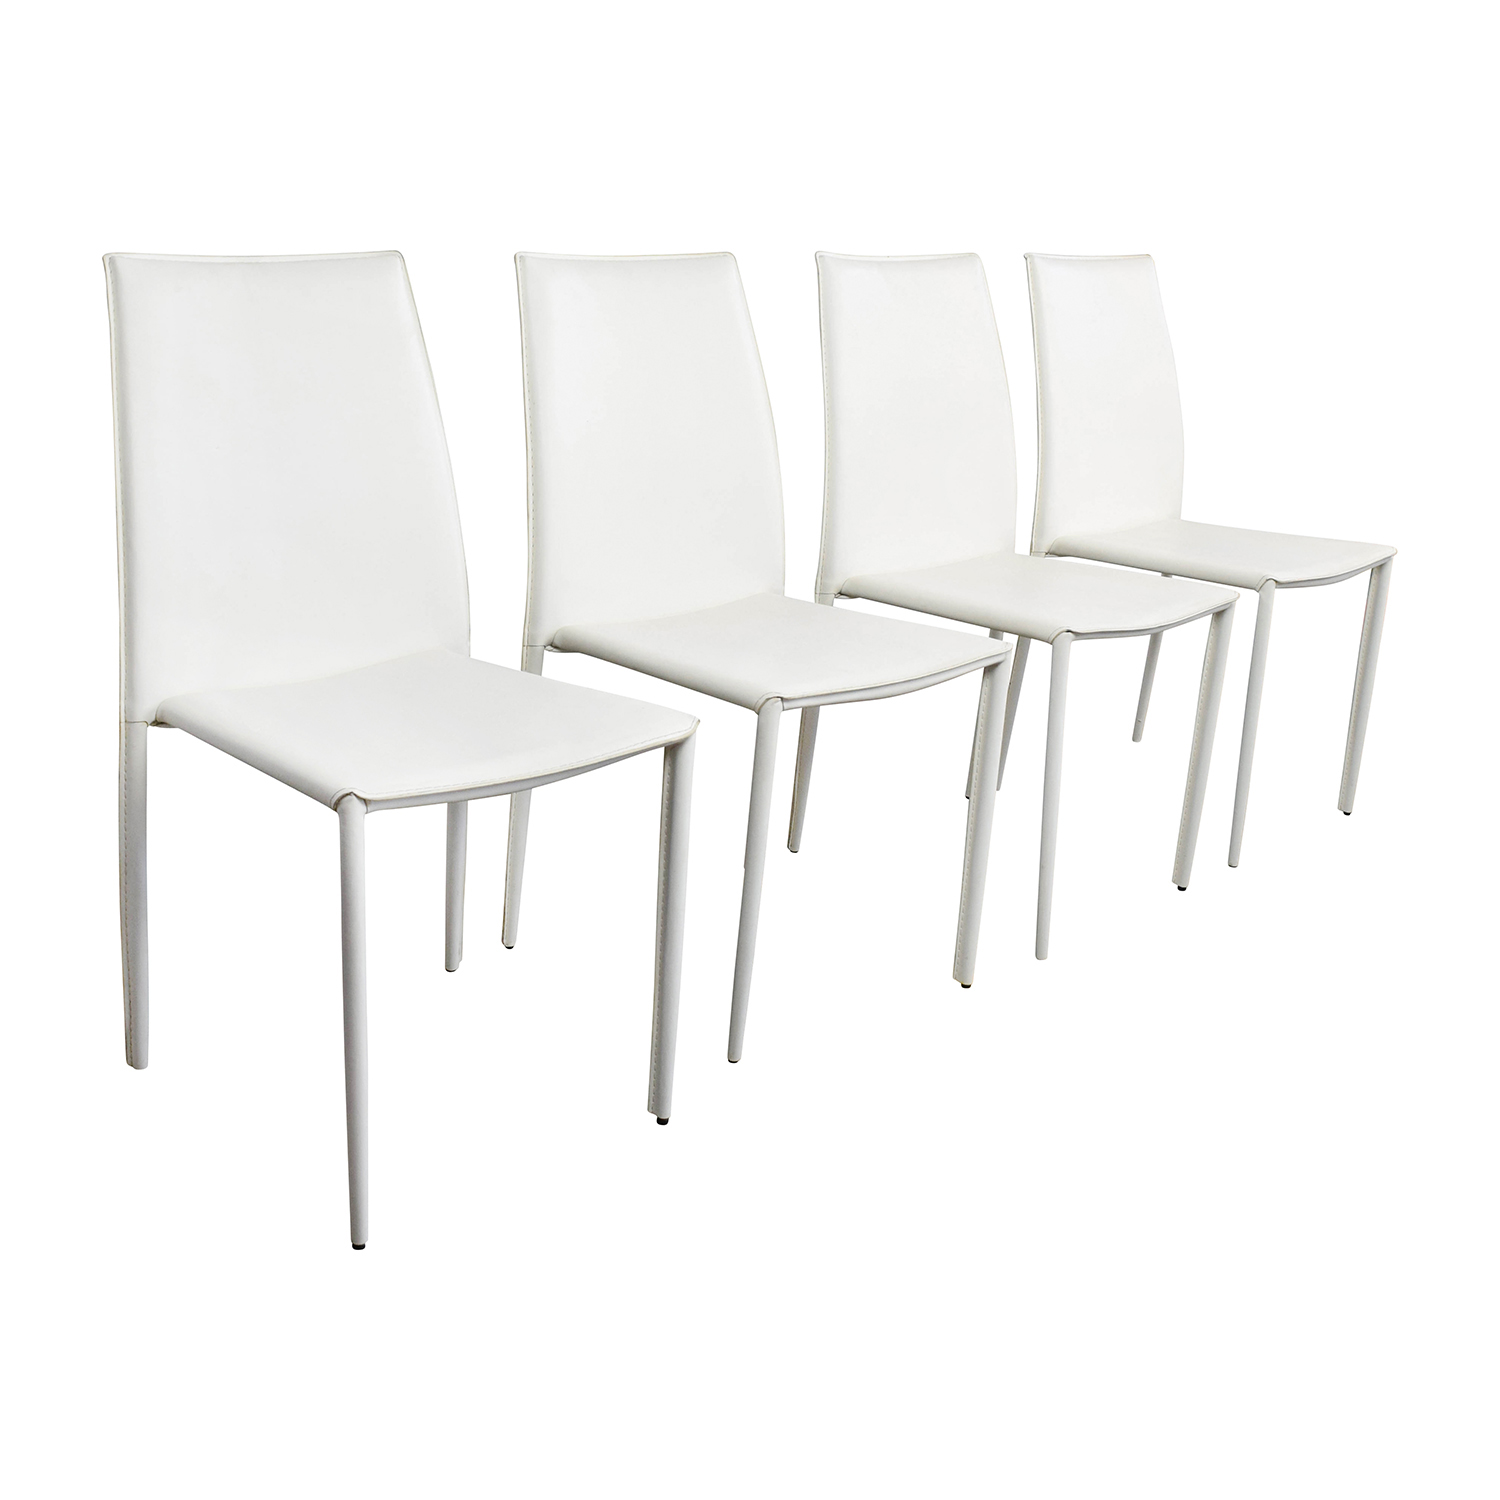 77 off all modern all modern white leather dining for White leather dining chairs